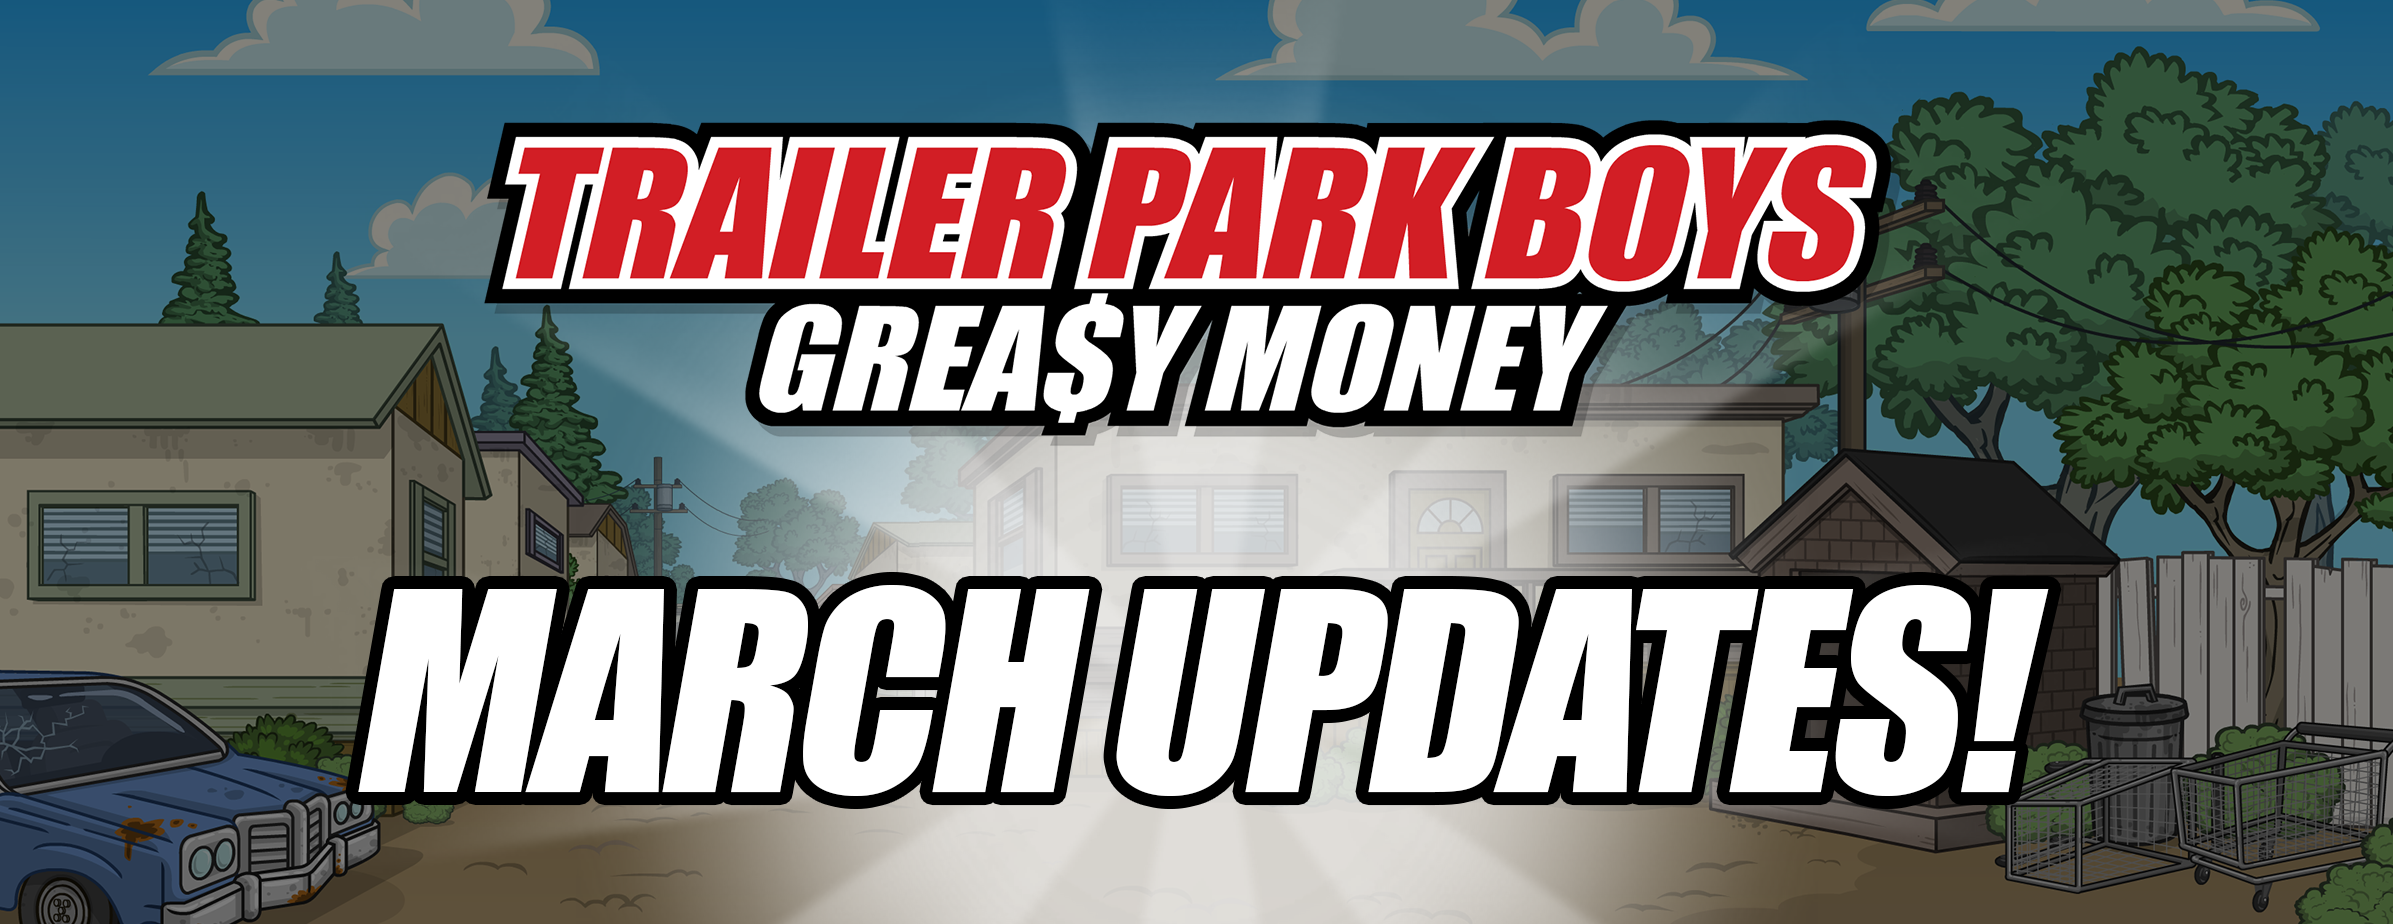 Trailer Park Boys: Greasy March Events!